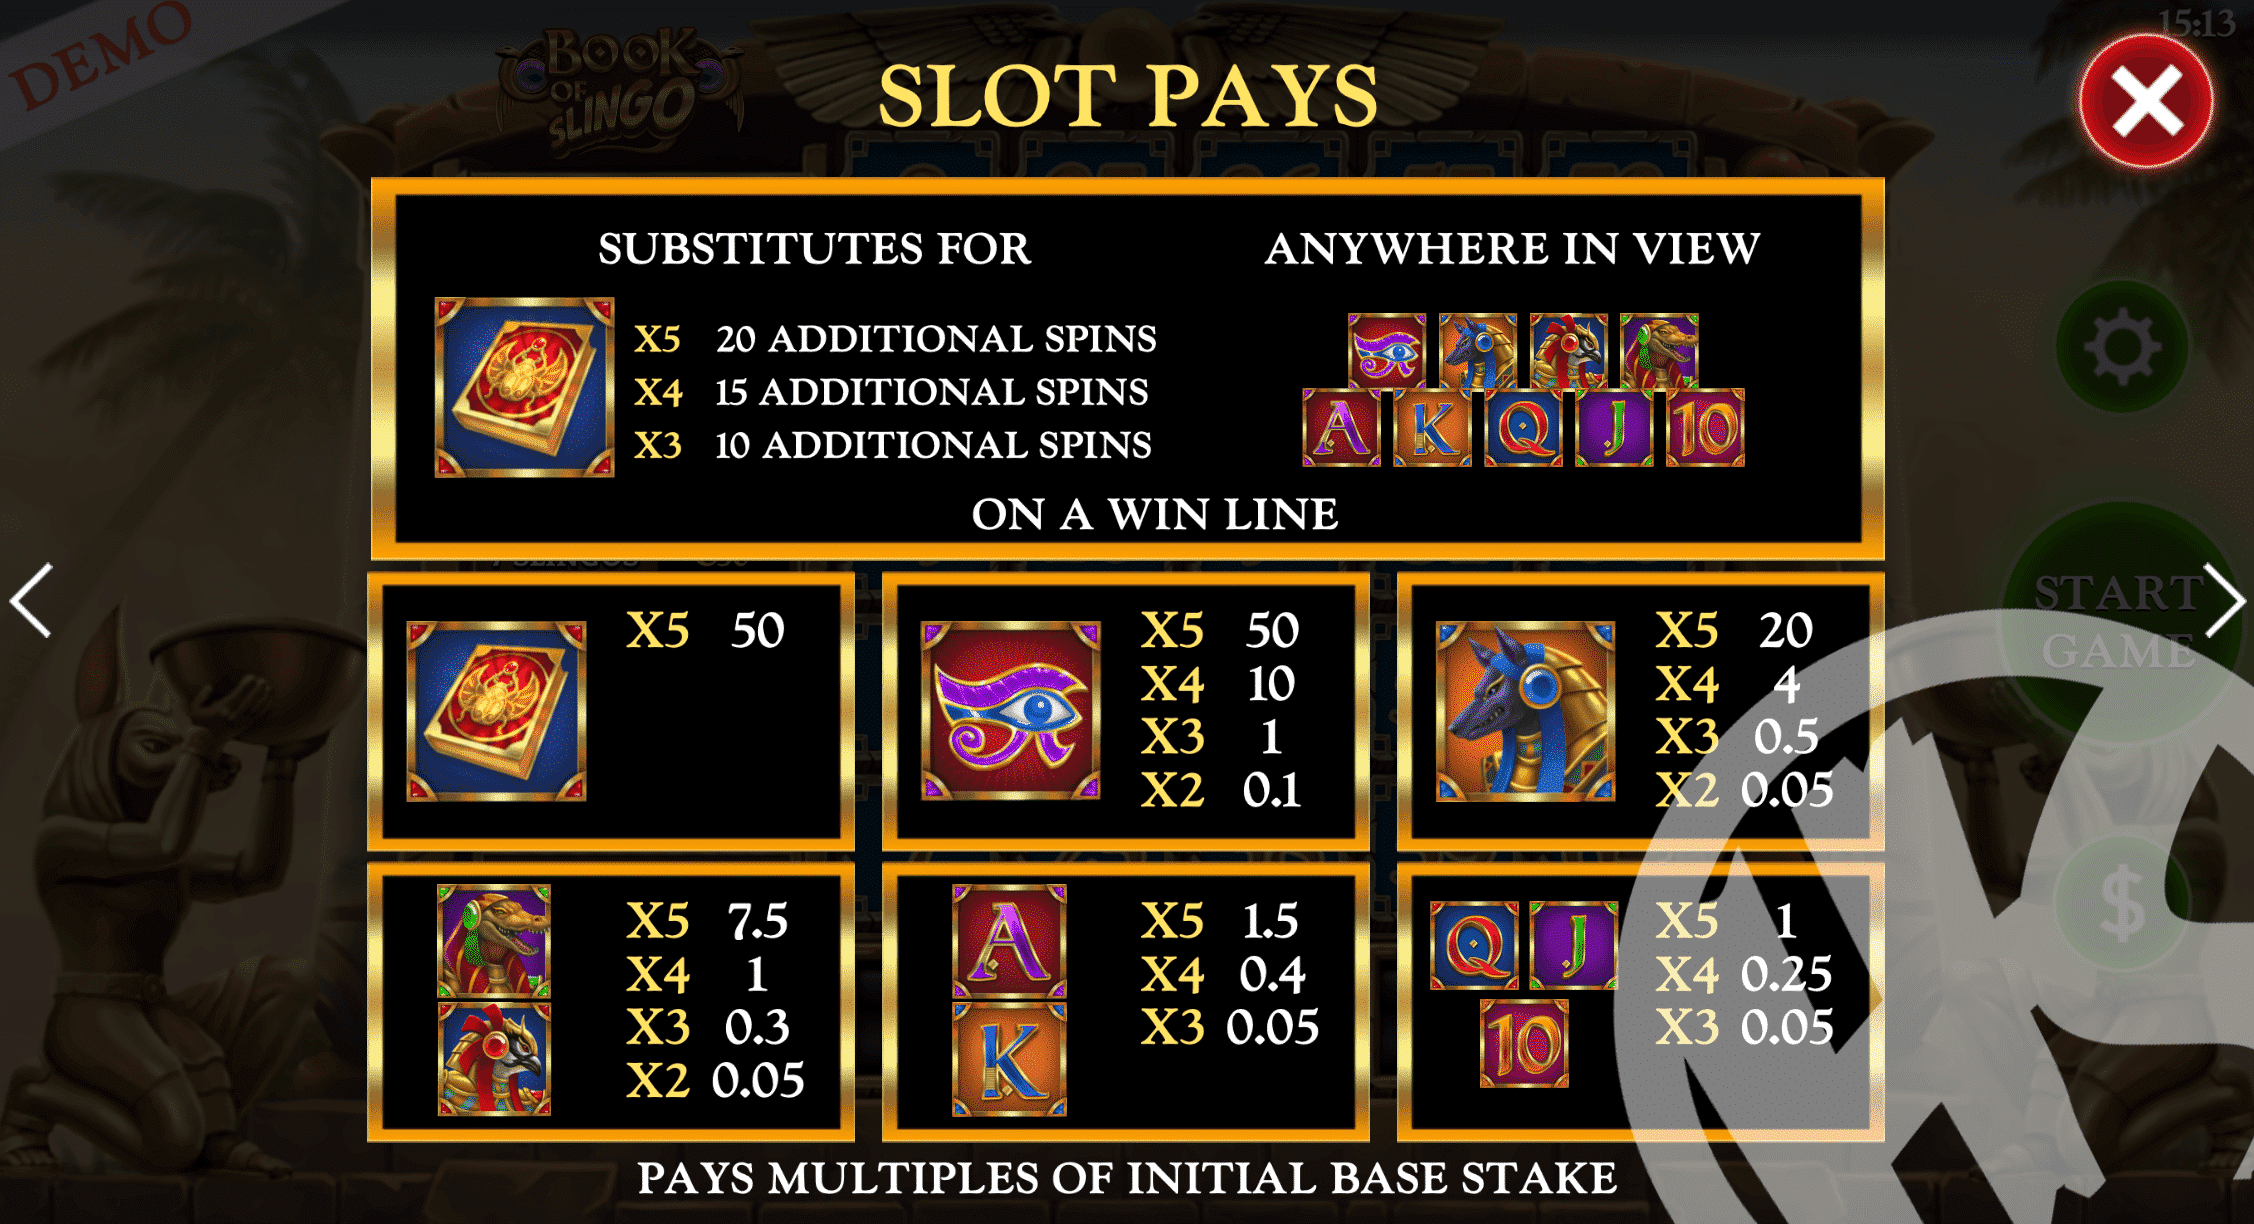 Book of Slingo Pay Table